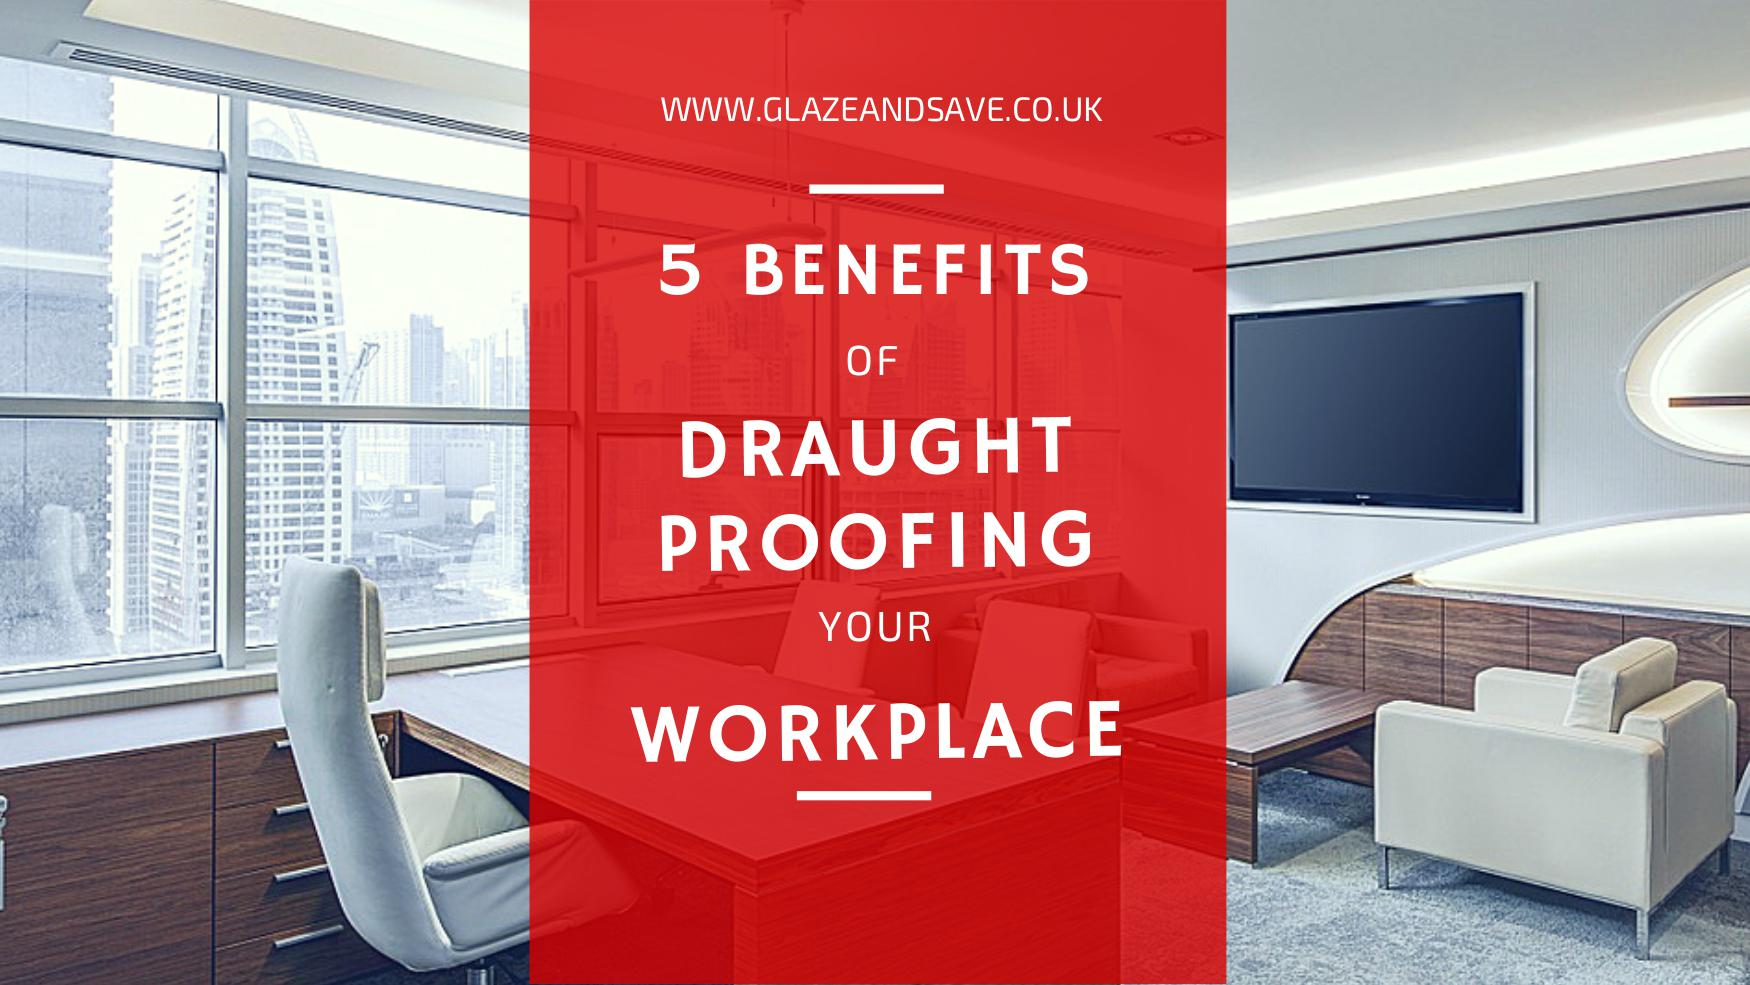 Five benefits of draught proofing your workplace by glaze and save bespoke magnetic secondary glazing and draught proofing based in Perth, Scotland www.glazeandsave.co.uk